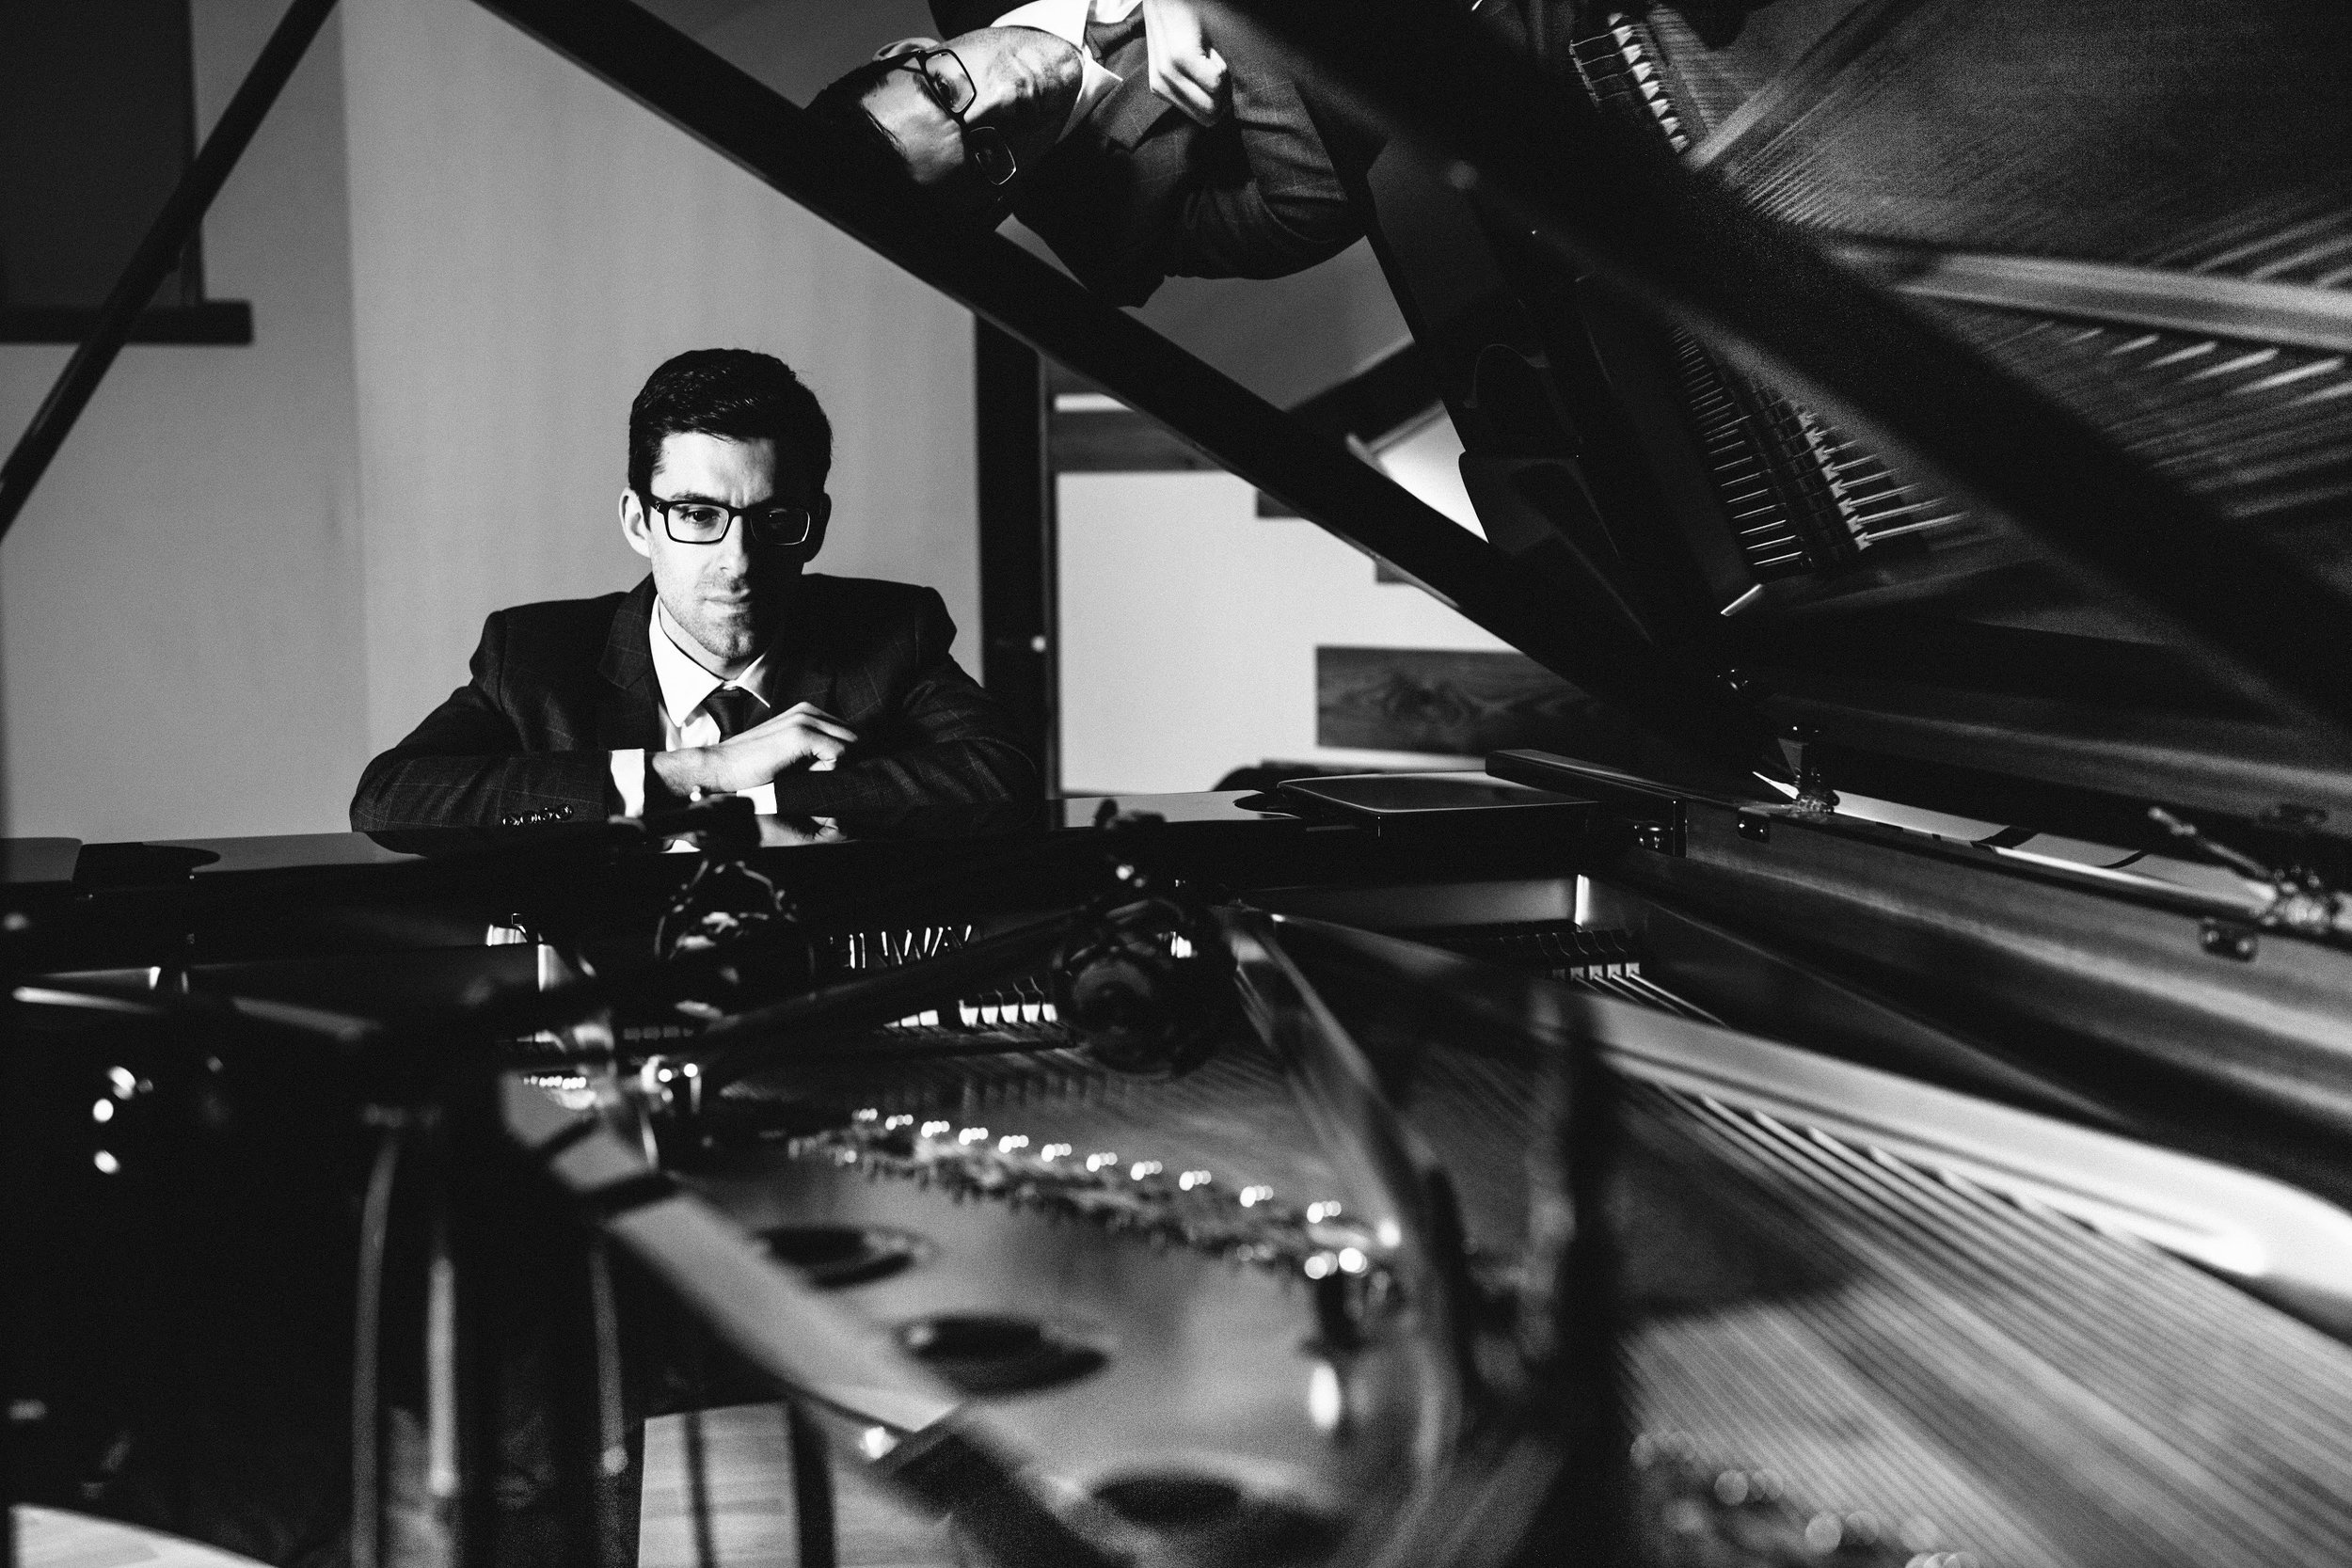 GABRIEL LATCHIN - JAZZDOOR 7PM / MUSIC 8.30PM£10 / £9 / £0 (BK)EMAIL TO RESERVE